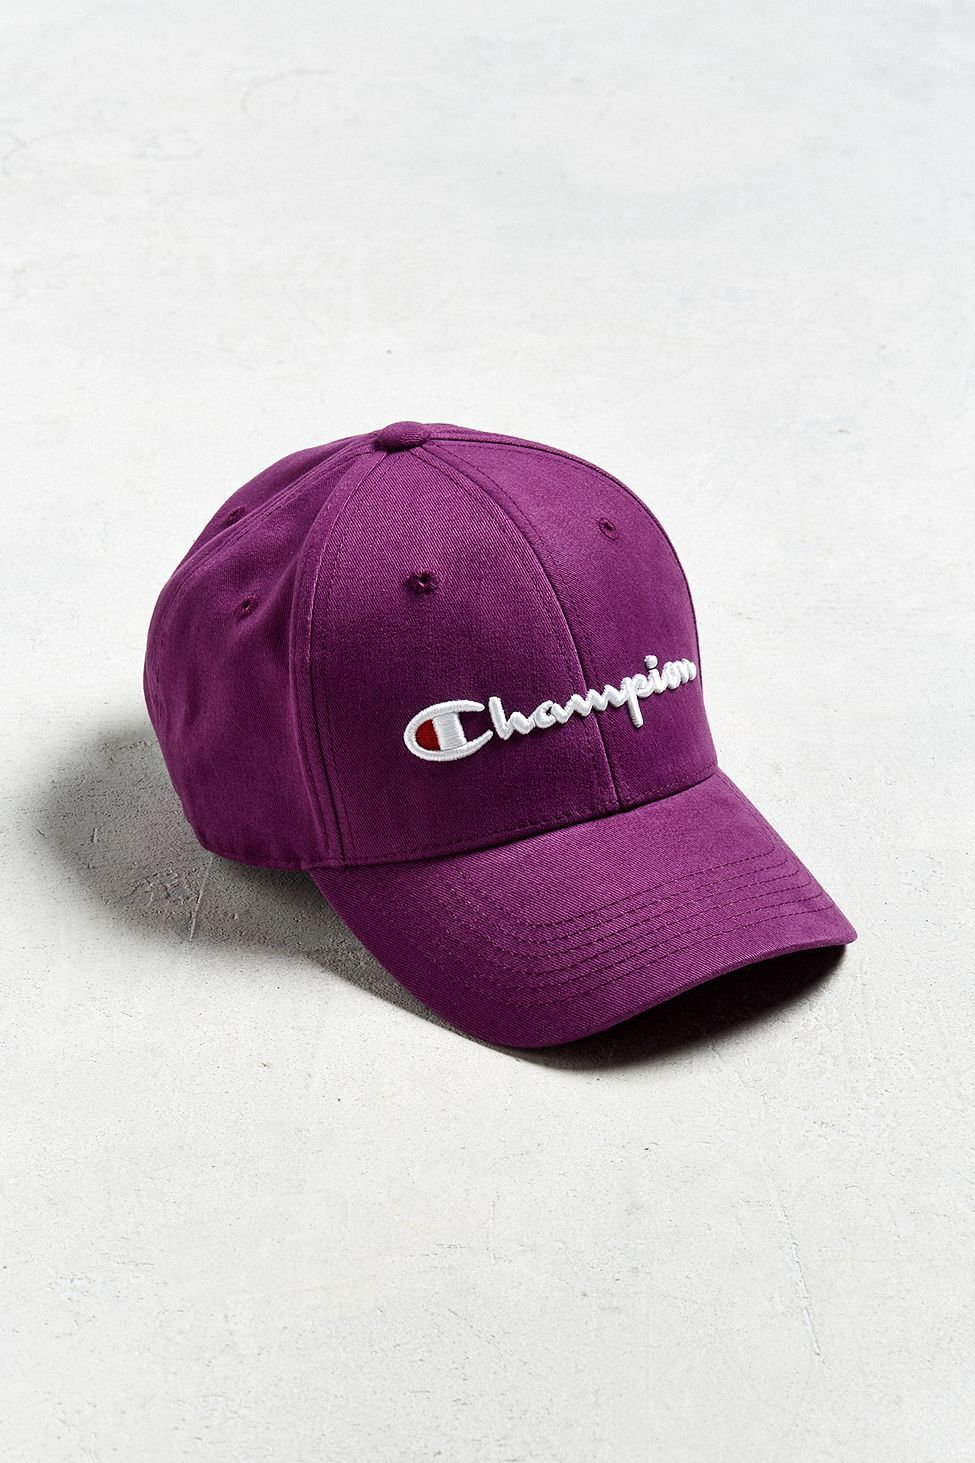 Urban Outfitters Champion Uo Baseball Hat Purple One Size Baseball Hats Hats Baseball Sunglasses